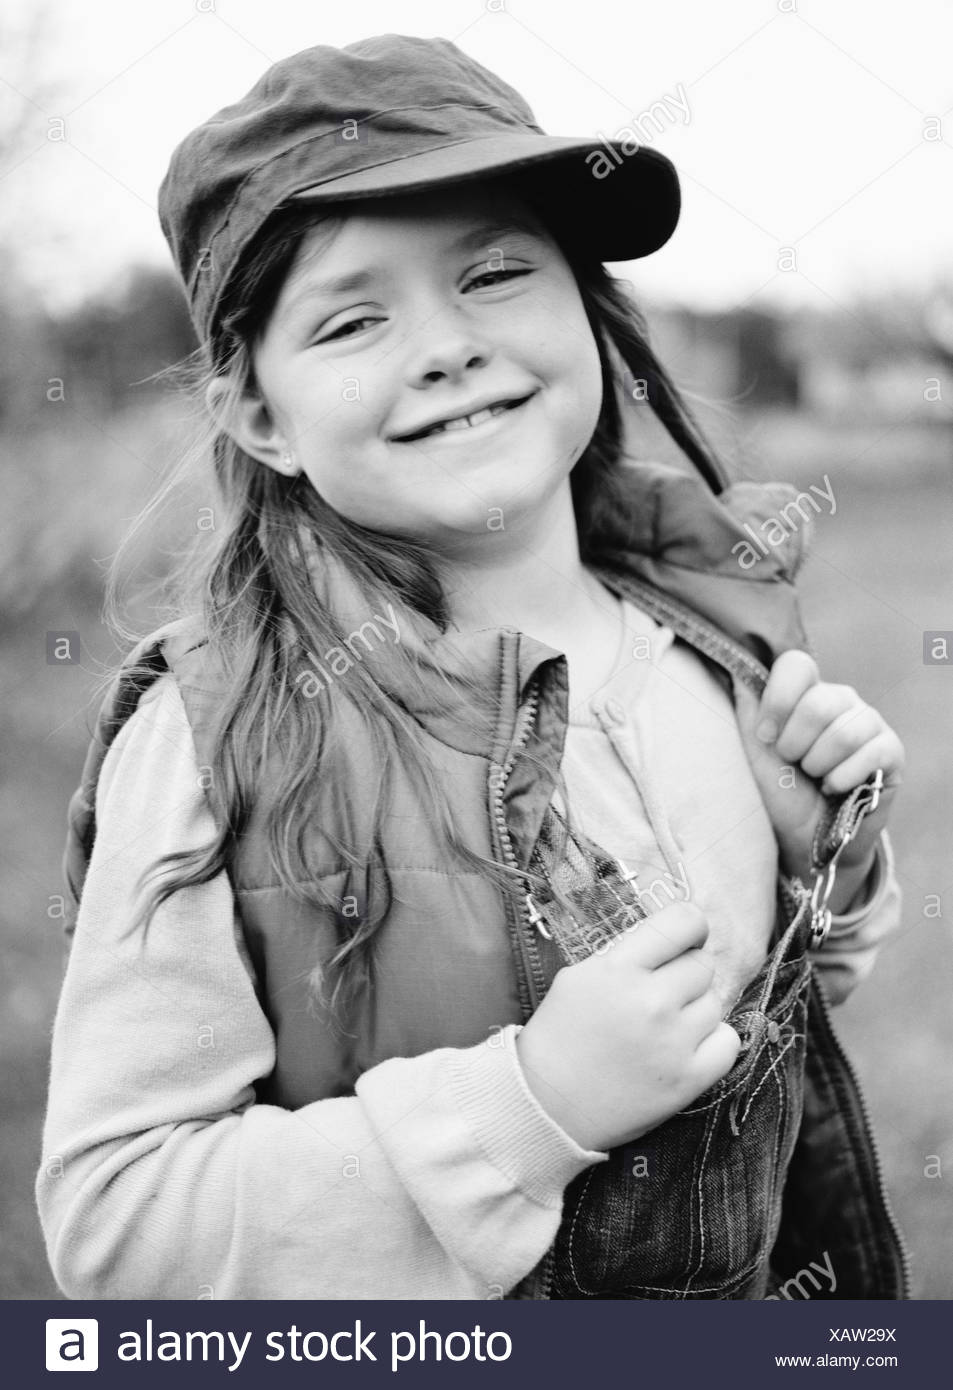 Portrait of a girl with a cap and dungarees, Sweden. - Stock Image